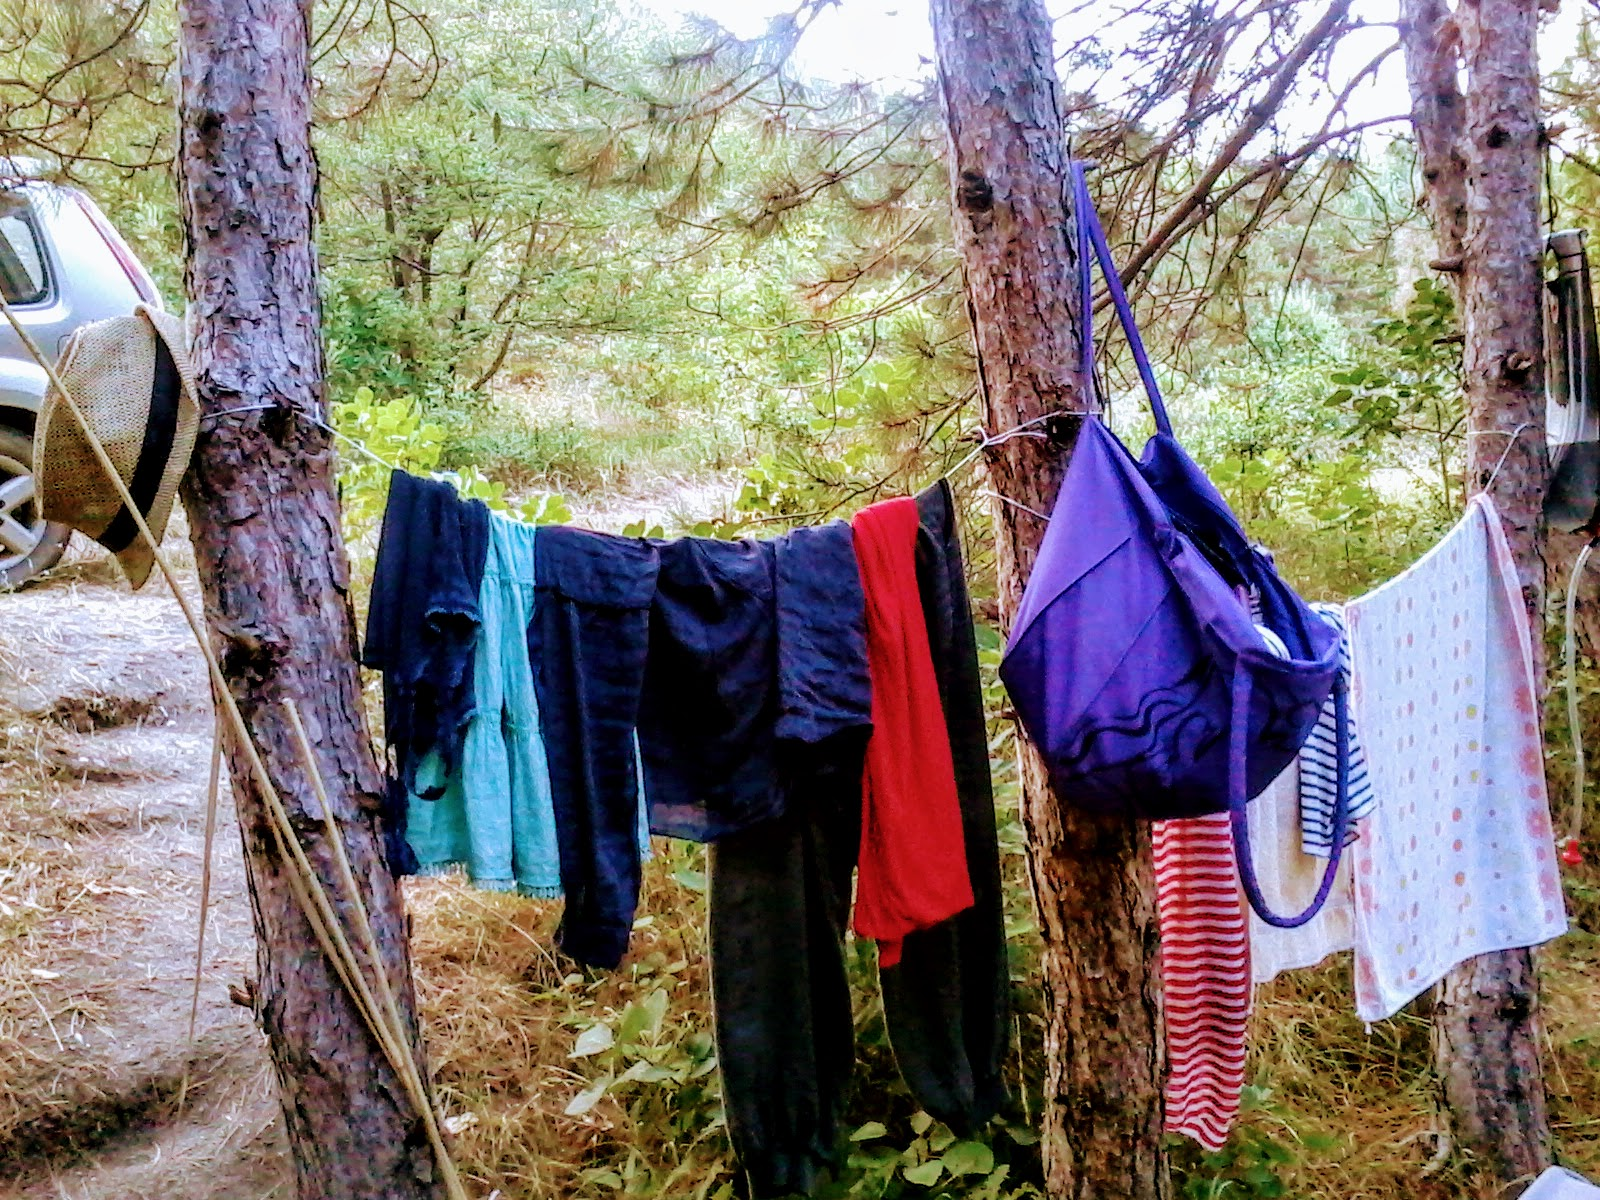 Clothes Being Washed ~ Staying clean in the wilderness outdoor revival